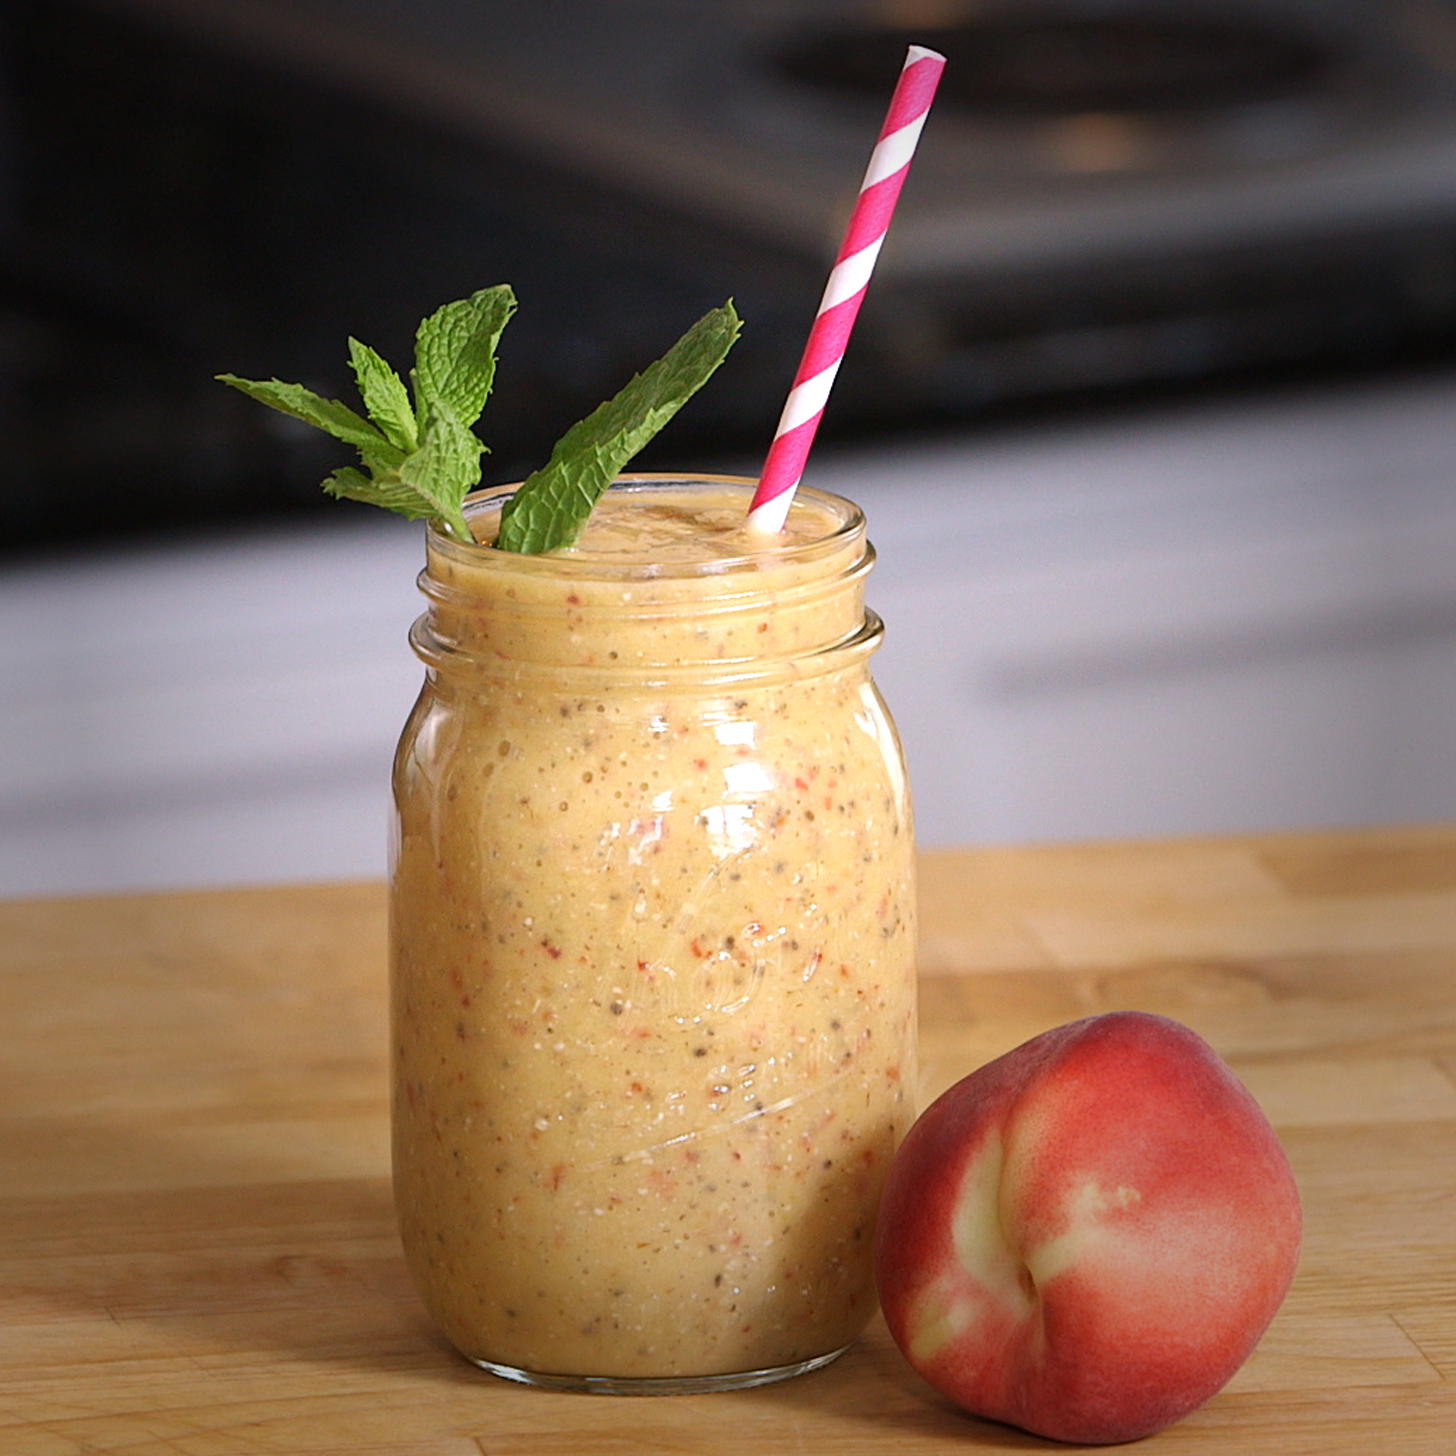 Vegan Peaches and Cream Smoothie Will Quench Your Ice Cream Cravings